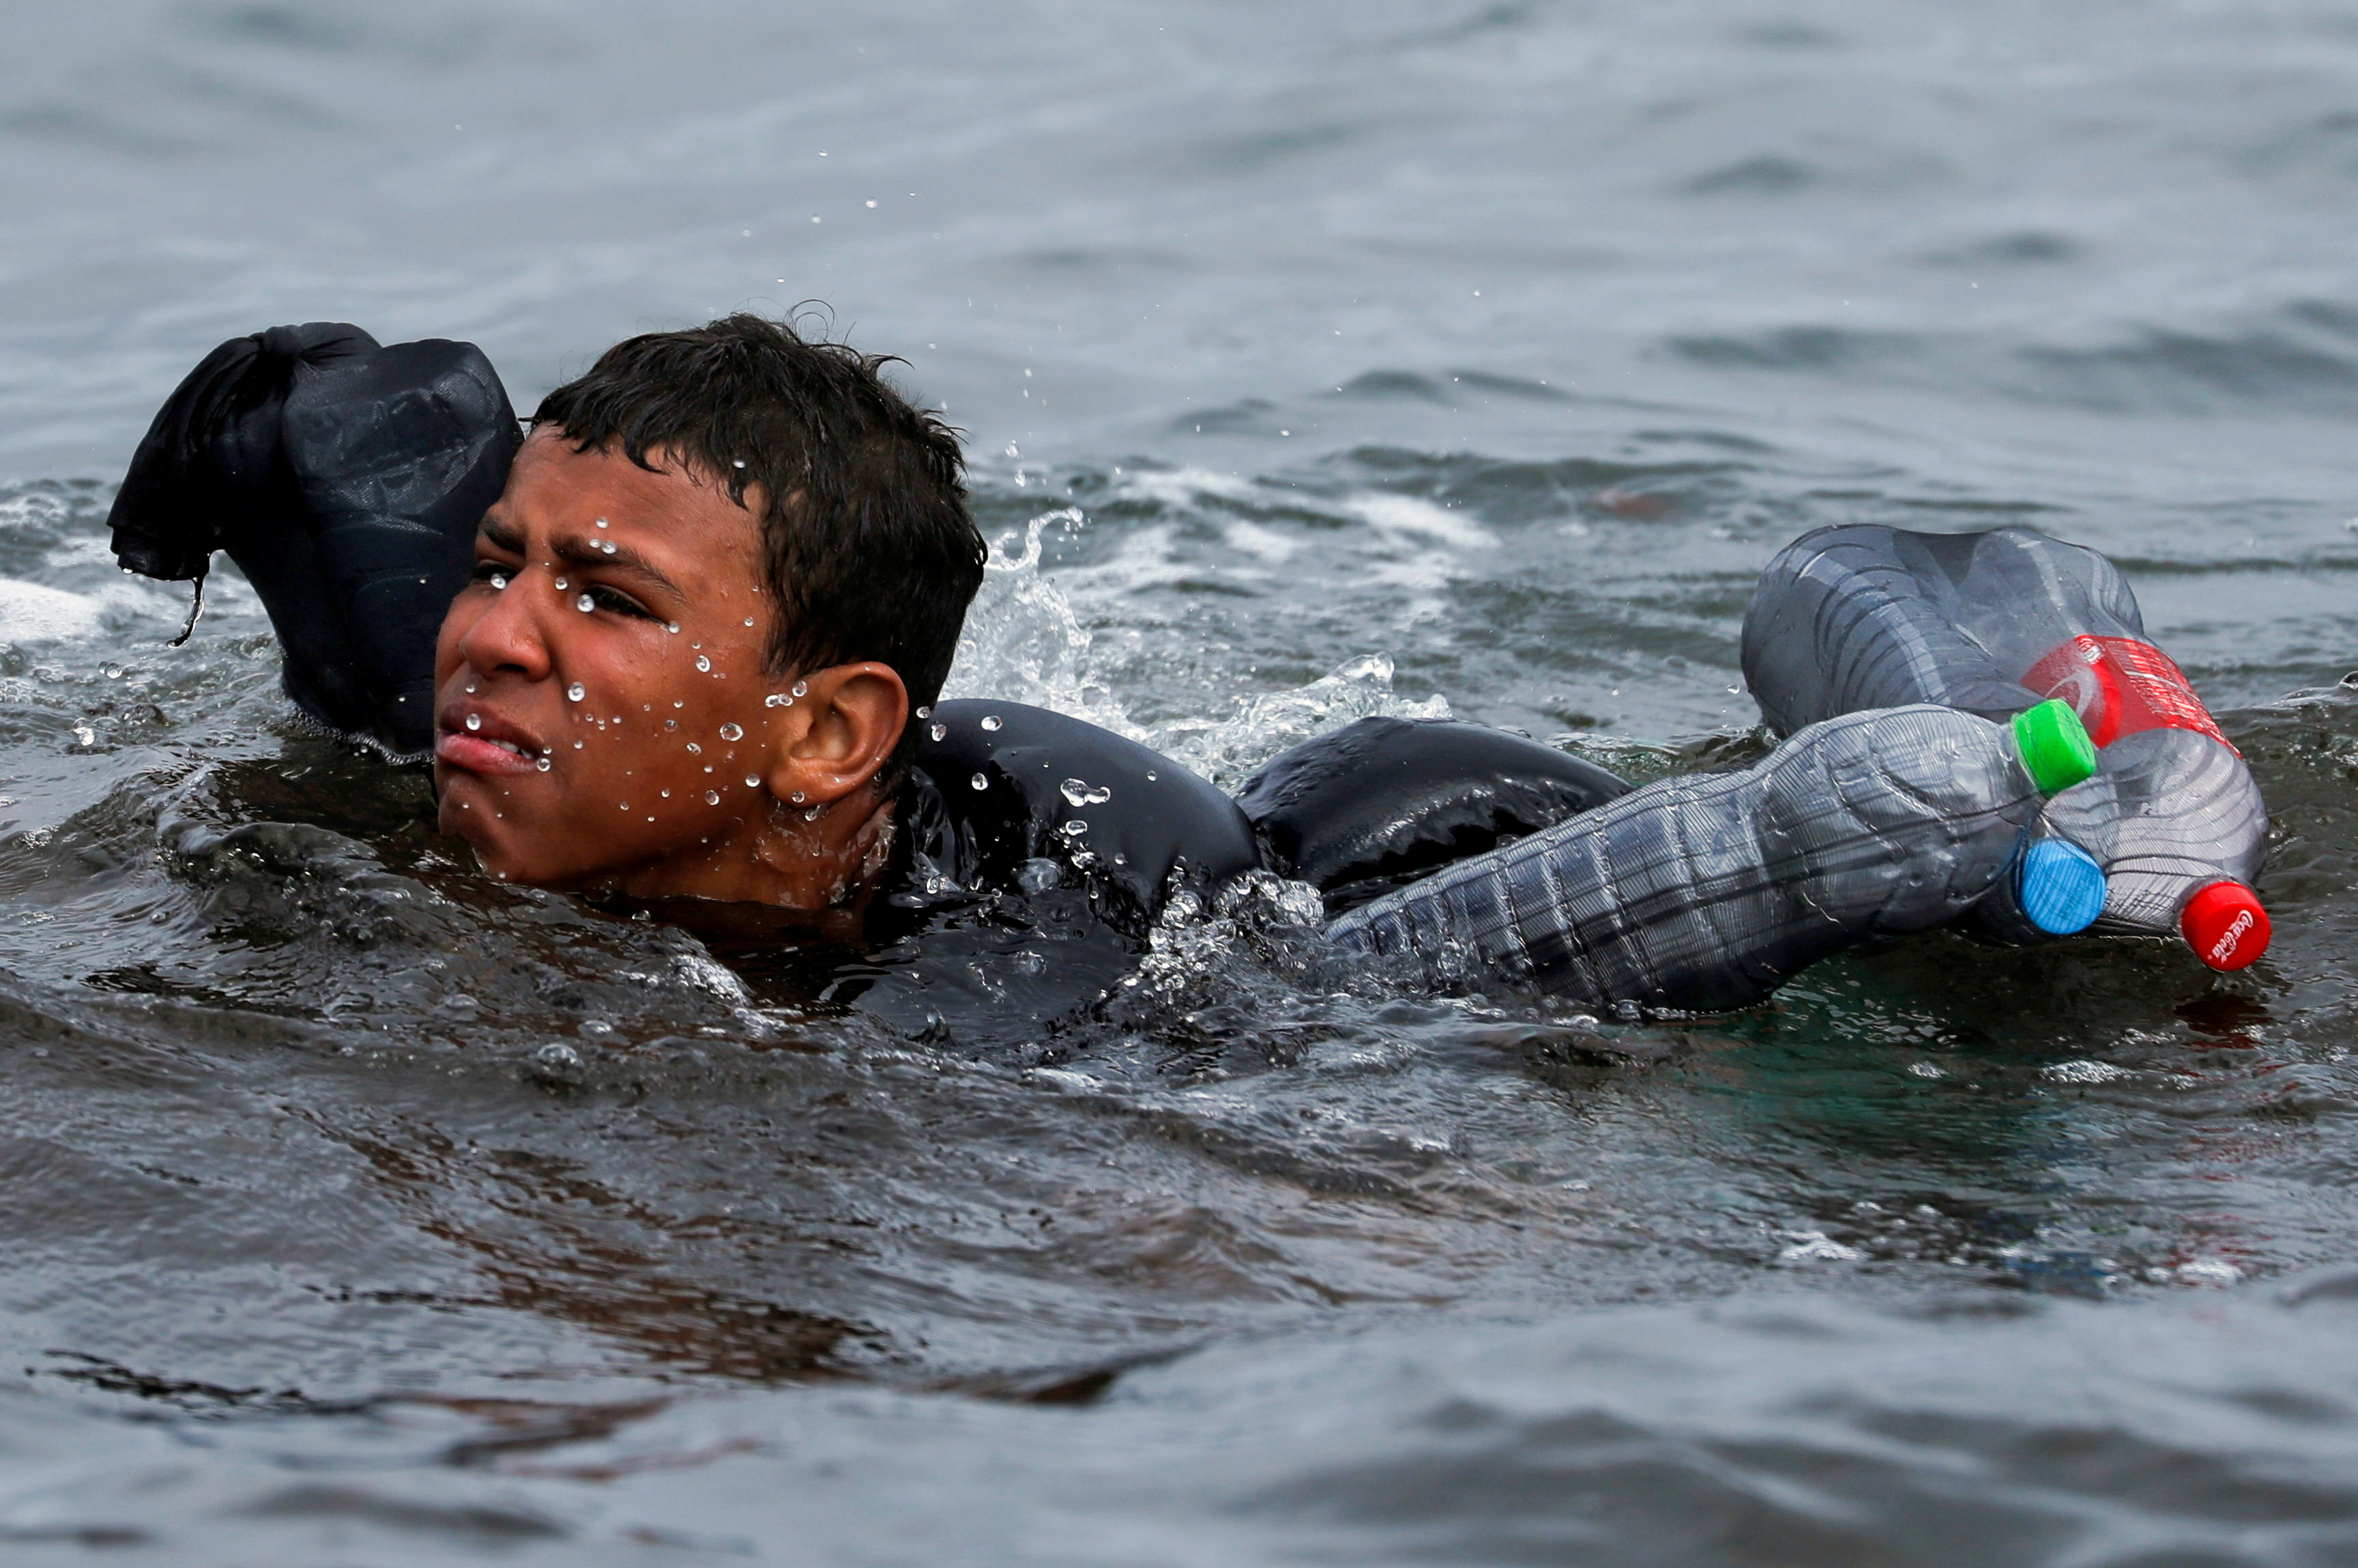 A Moroccan boy swims using bottles as a float, near the fence between the Spanish-Moroccan border, after thousands of migrants swam across the border, in Ceuta, Spain, May 19, 2021. REUTERS/Jon Nazca